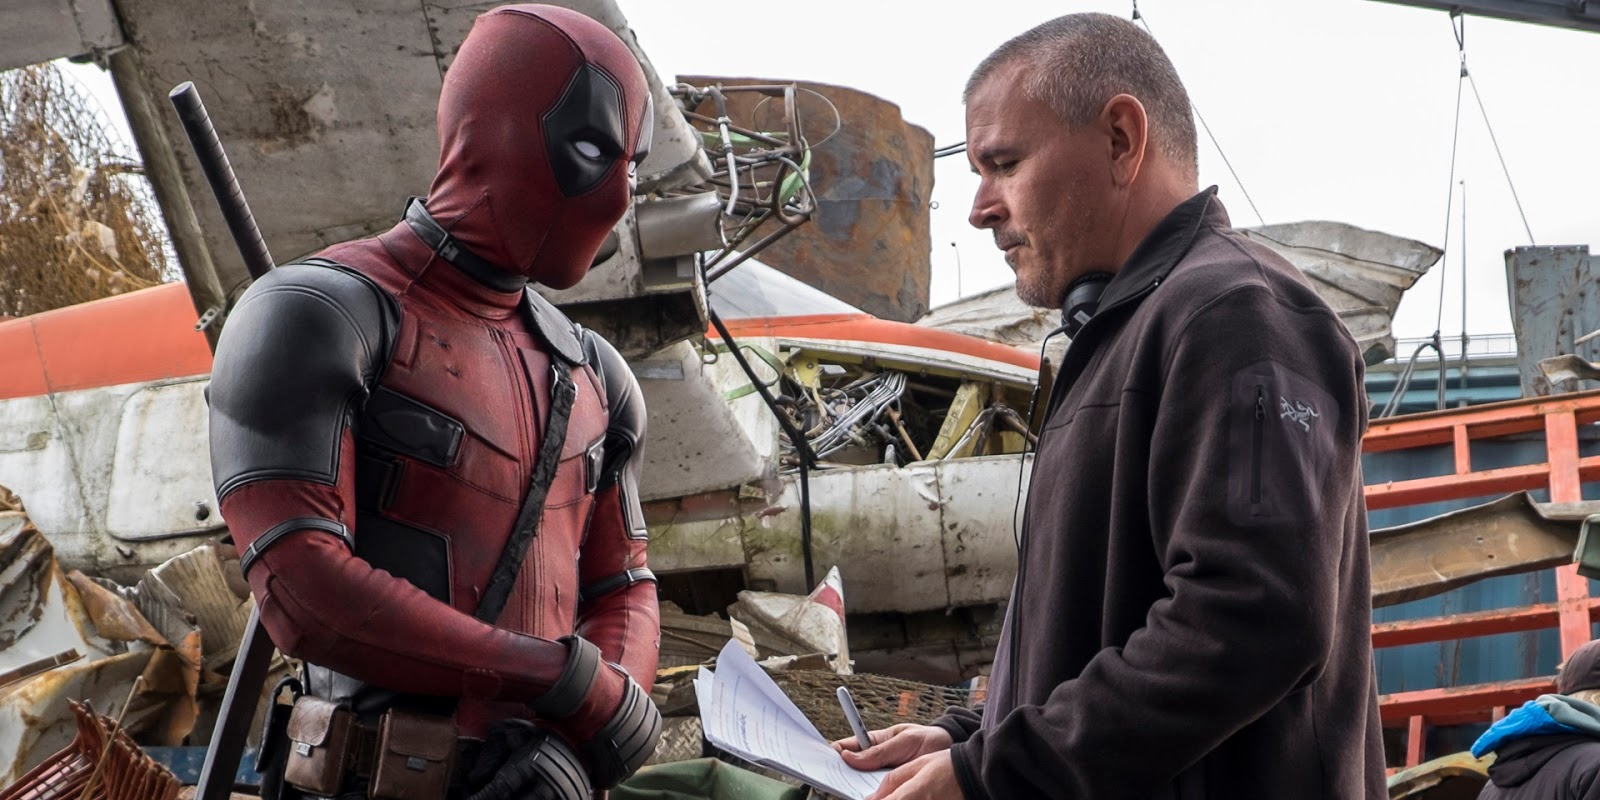 Tim Miller directs Deadpool